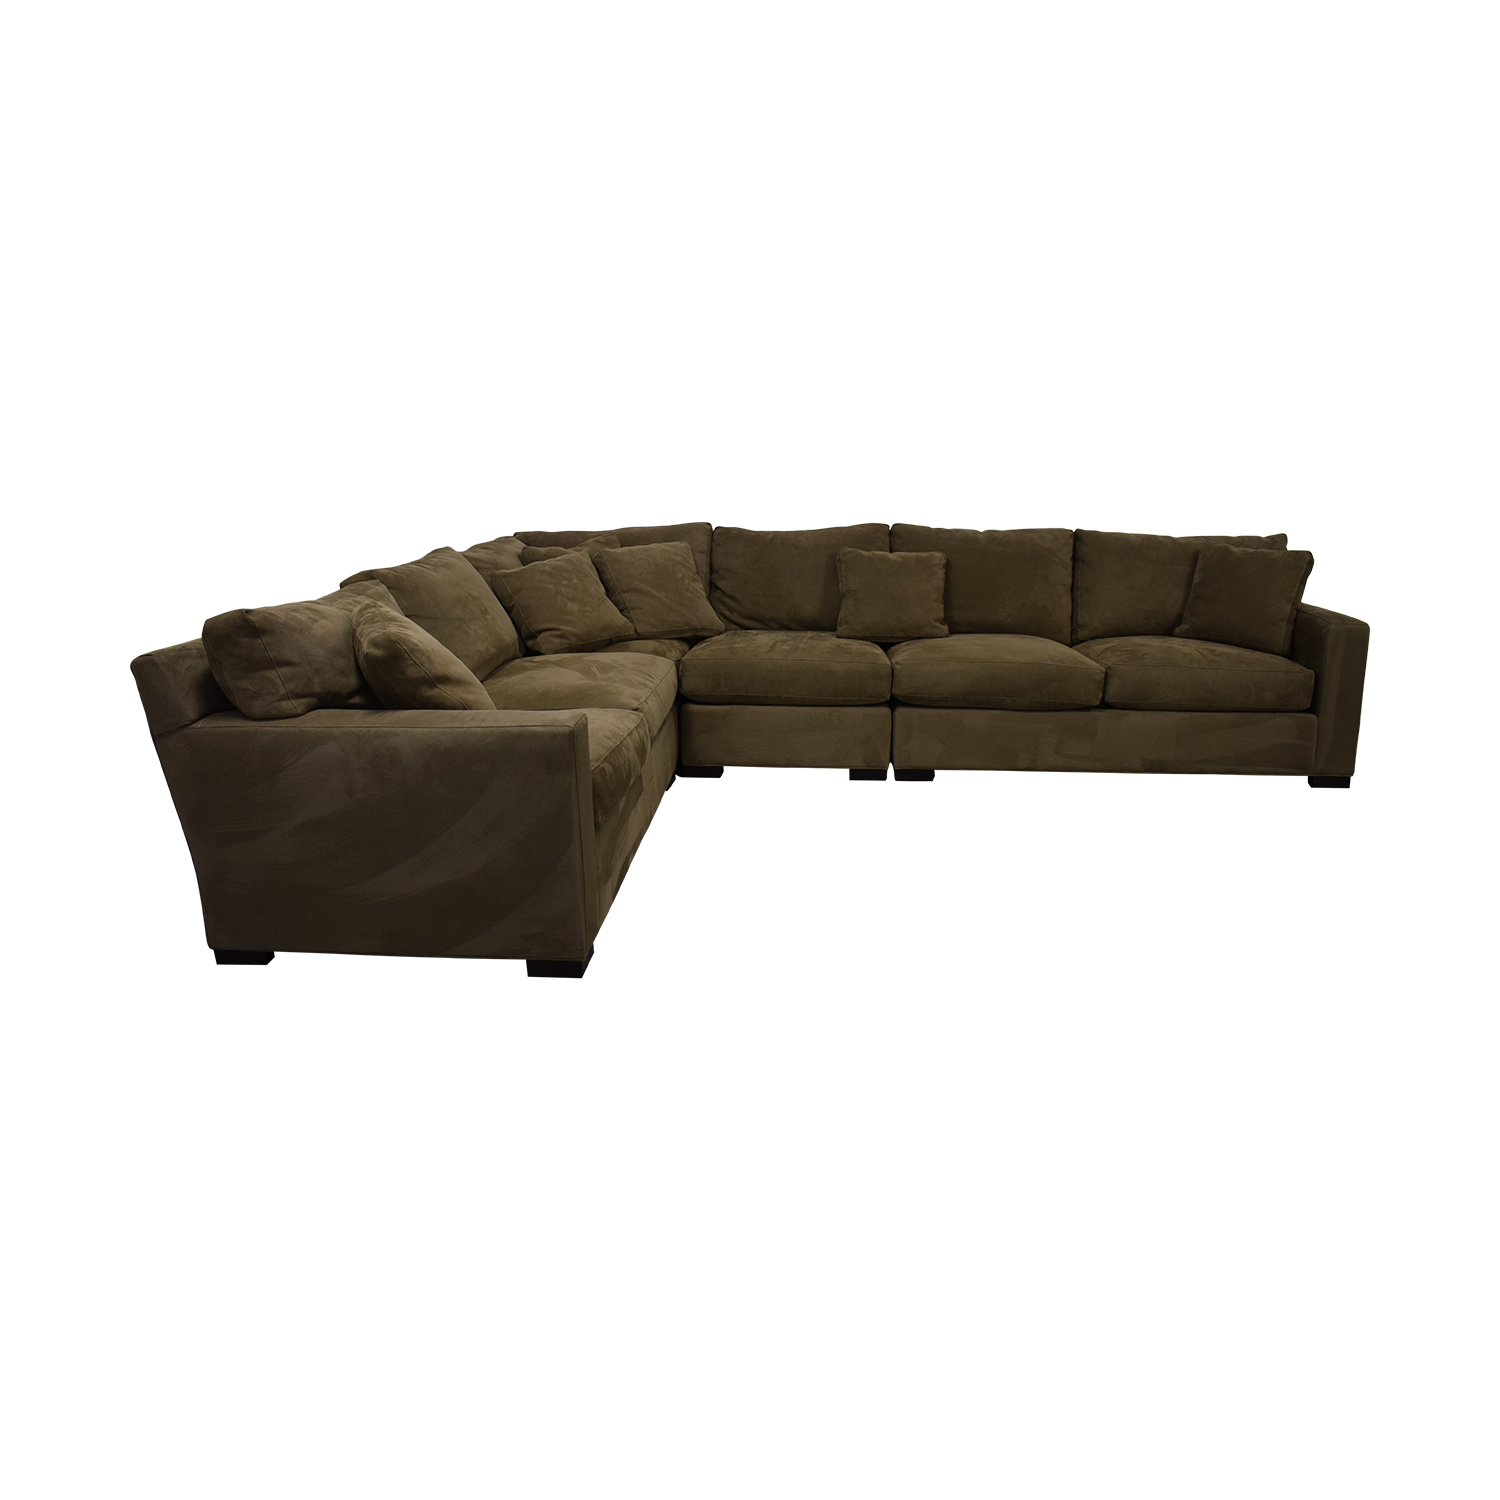 Crate & Barrel Crate & Barrel Axis II Modular Sectional Sofa